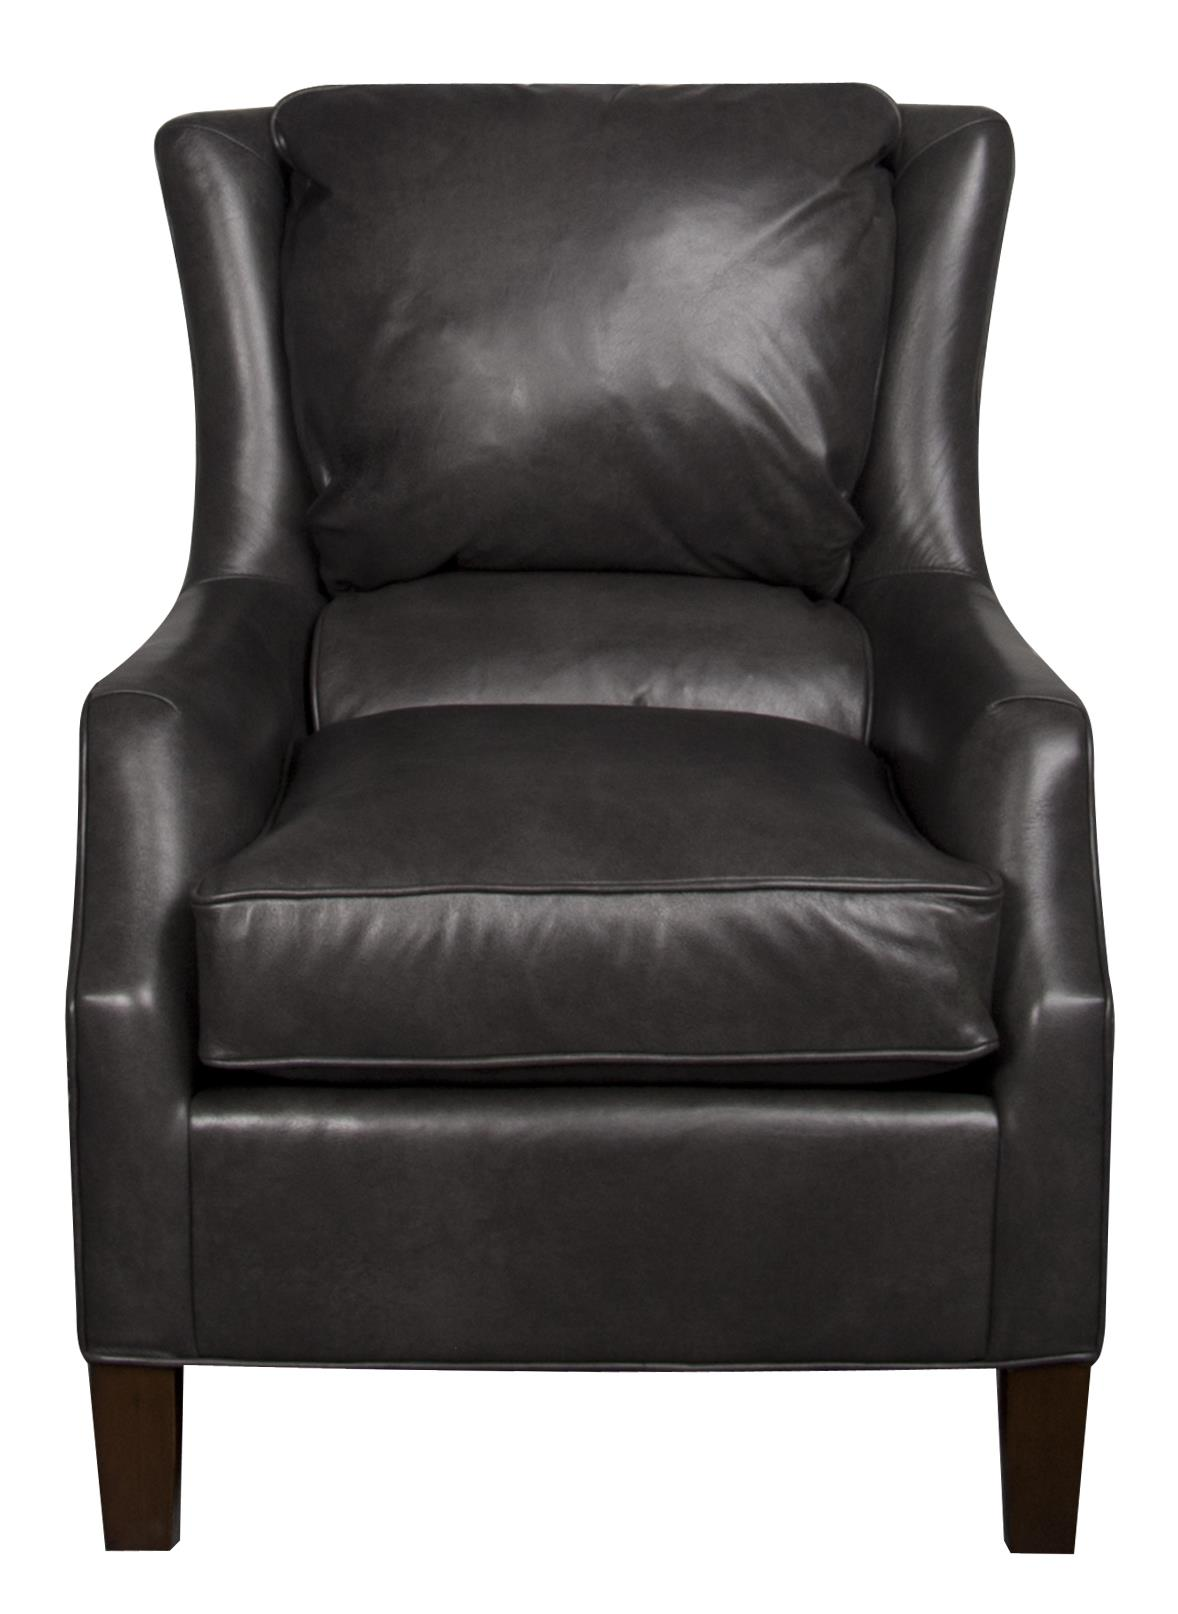 Sherry Sherry Leather Chair by King Hickory at Morris Home